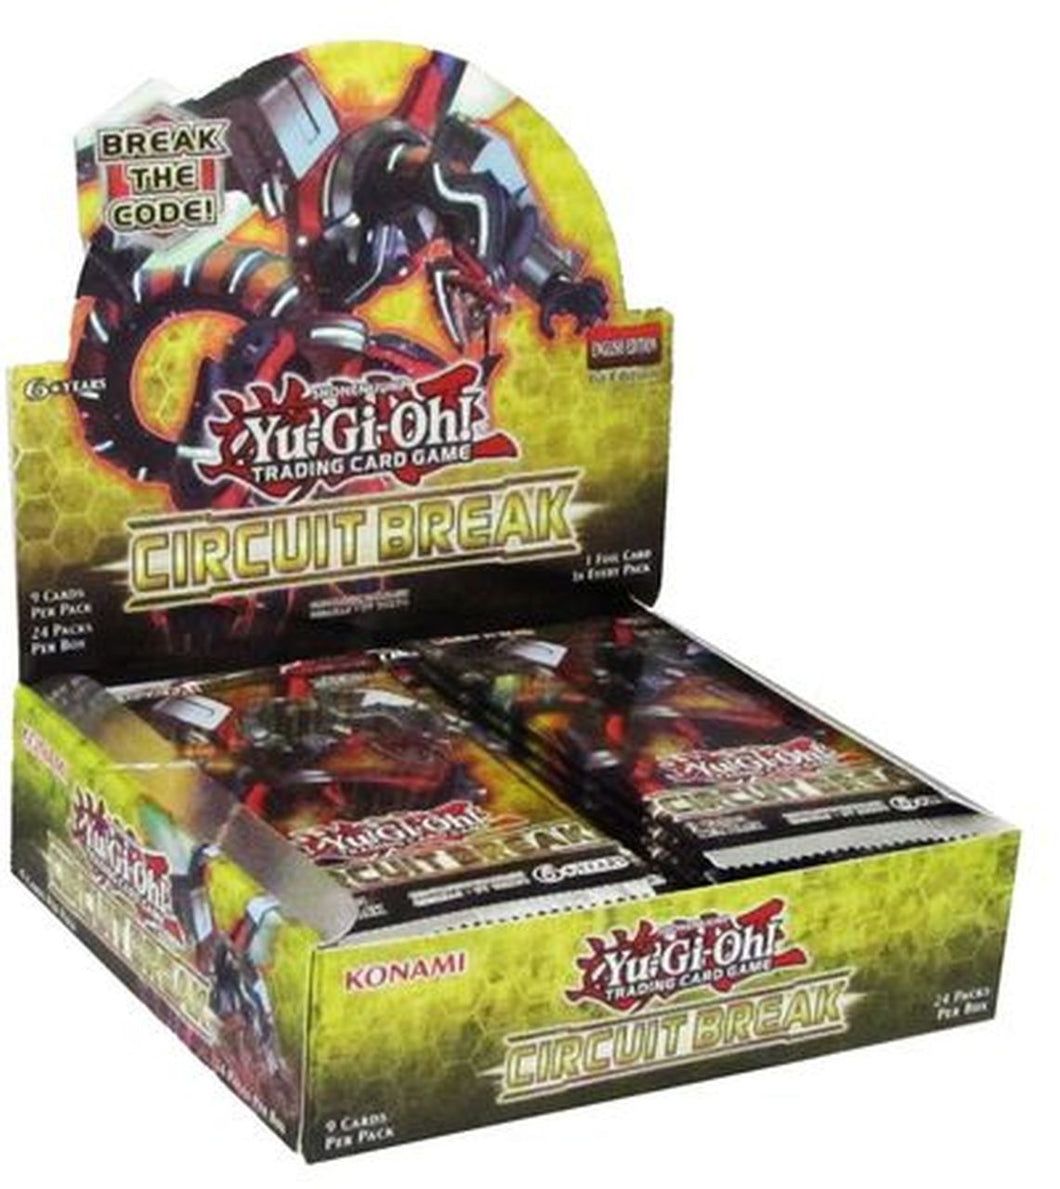 Yu-Gi-Oh Circuit Break Booster Box